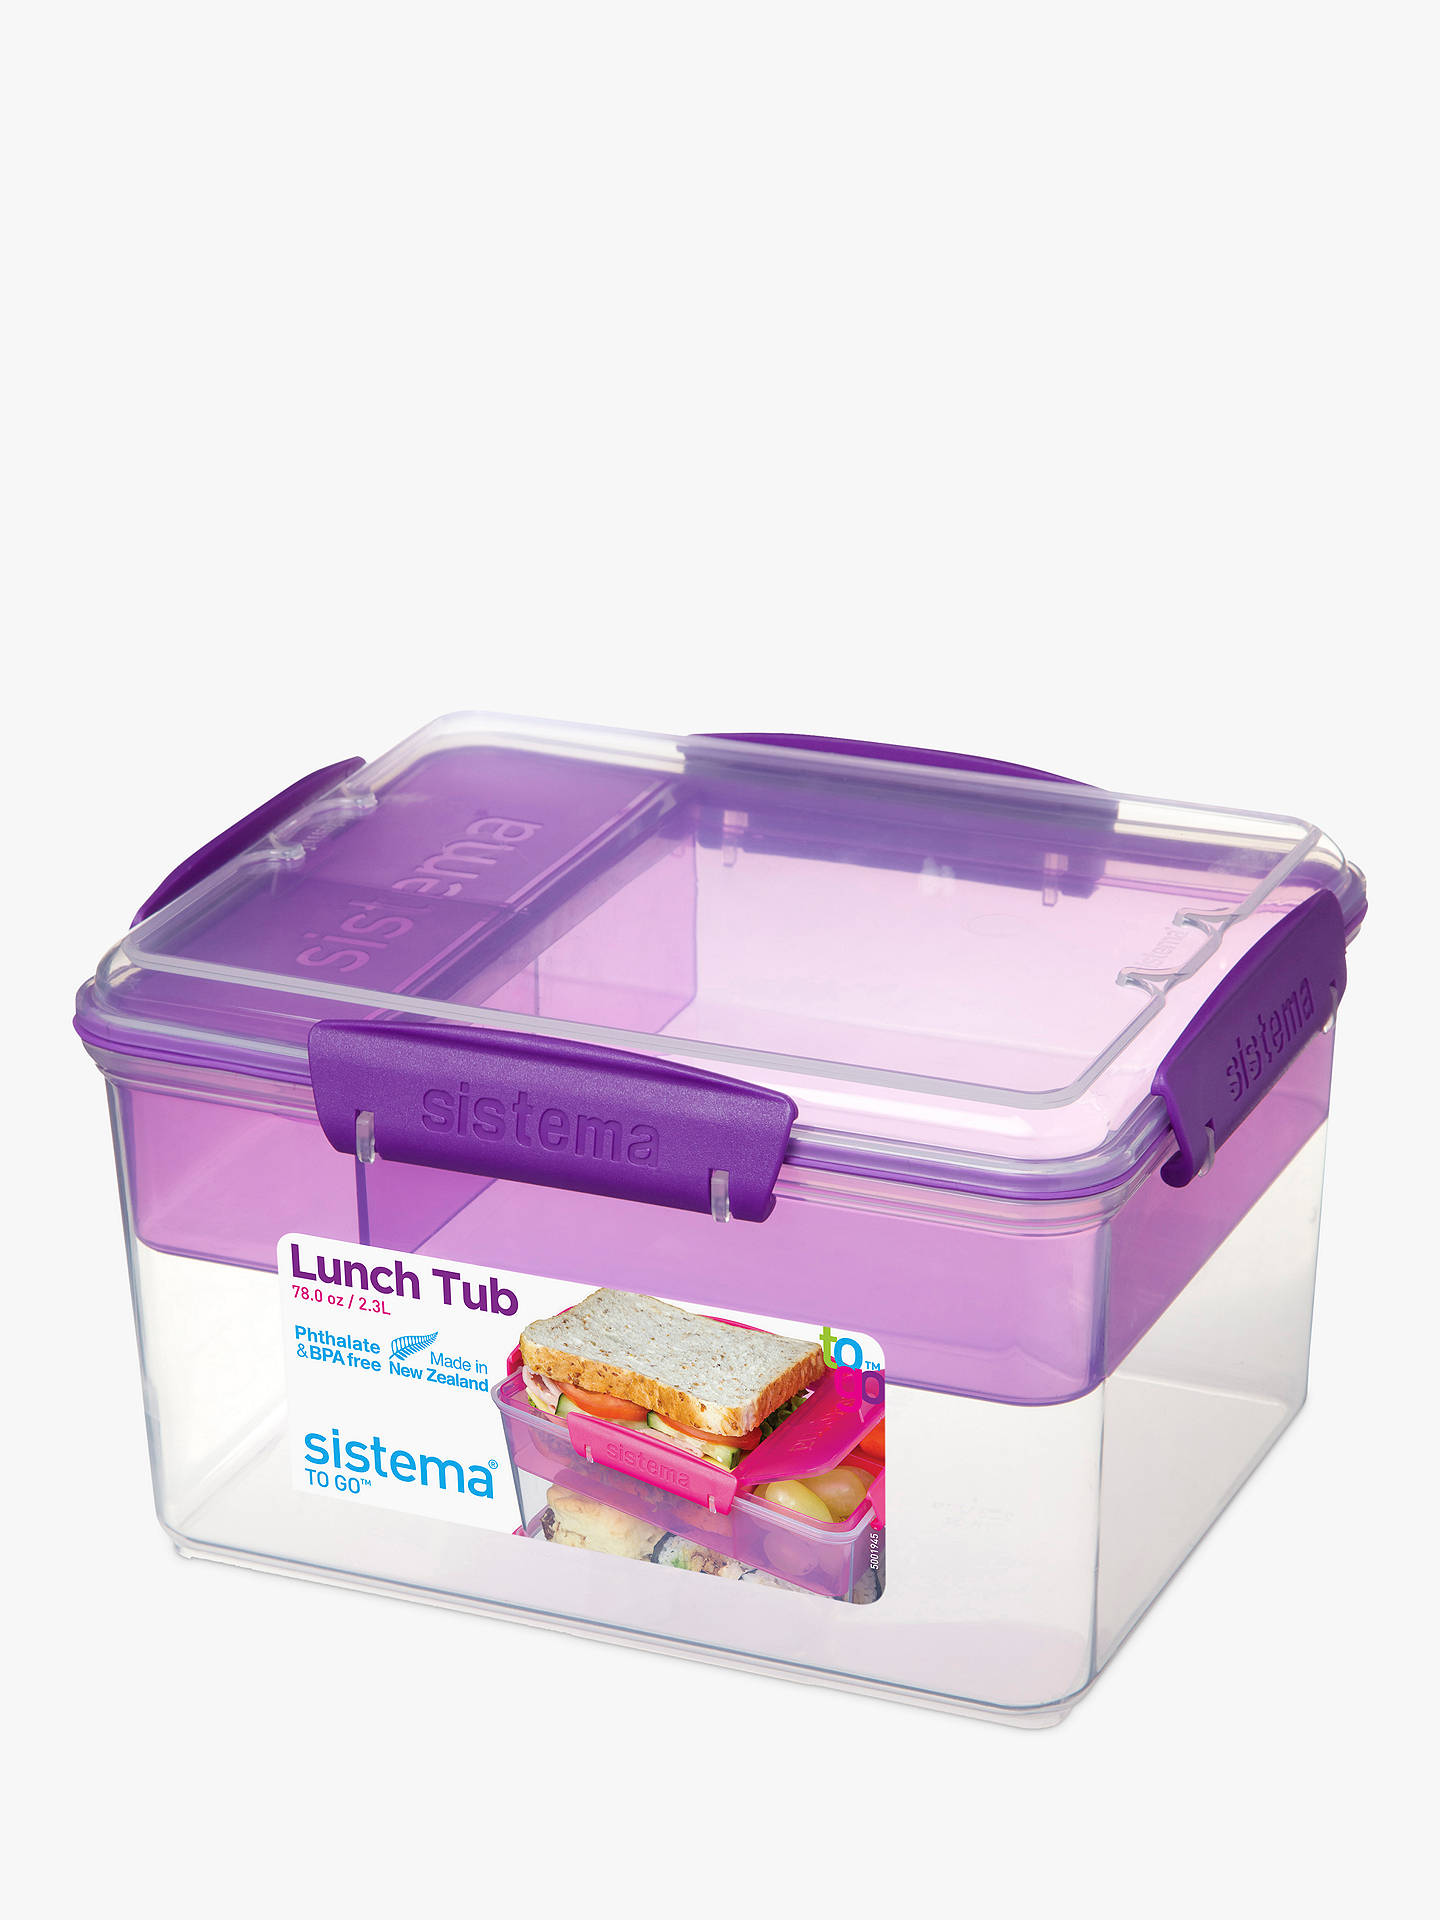 Buy Sistema Lunch Tub To Go, 2.3L, Assorted Online at johnlewis.com